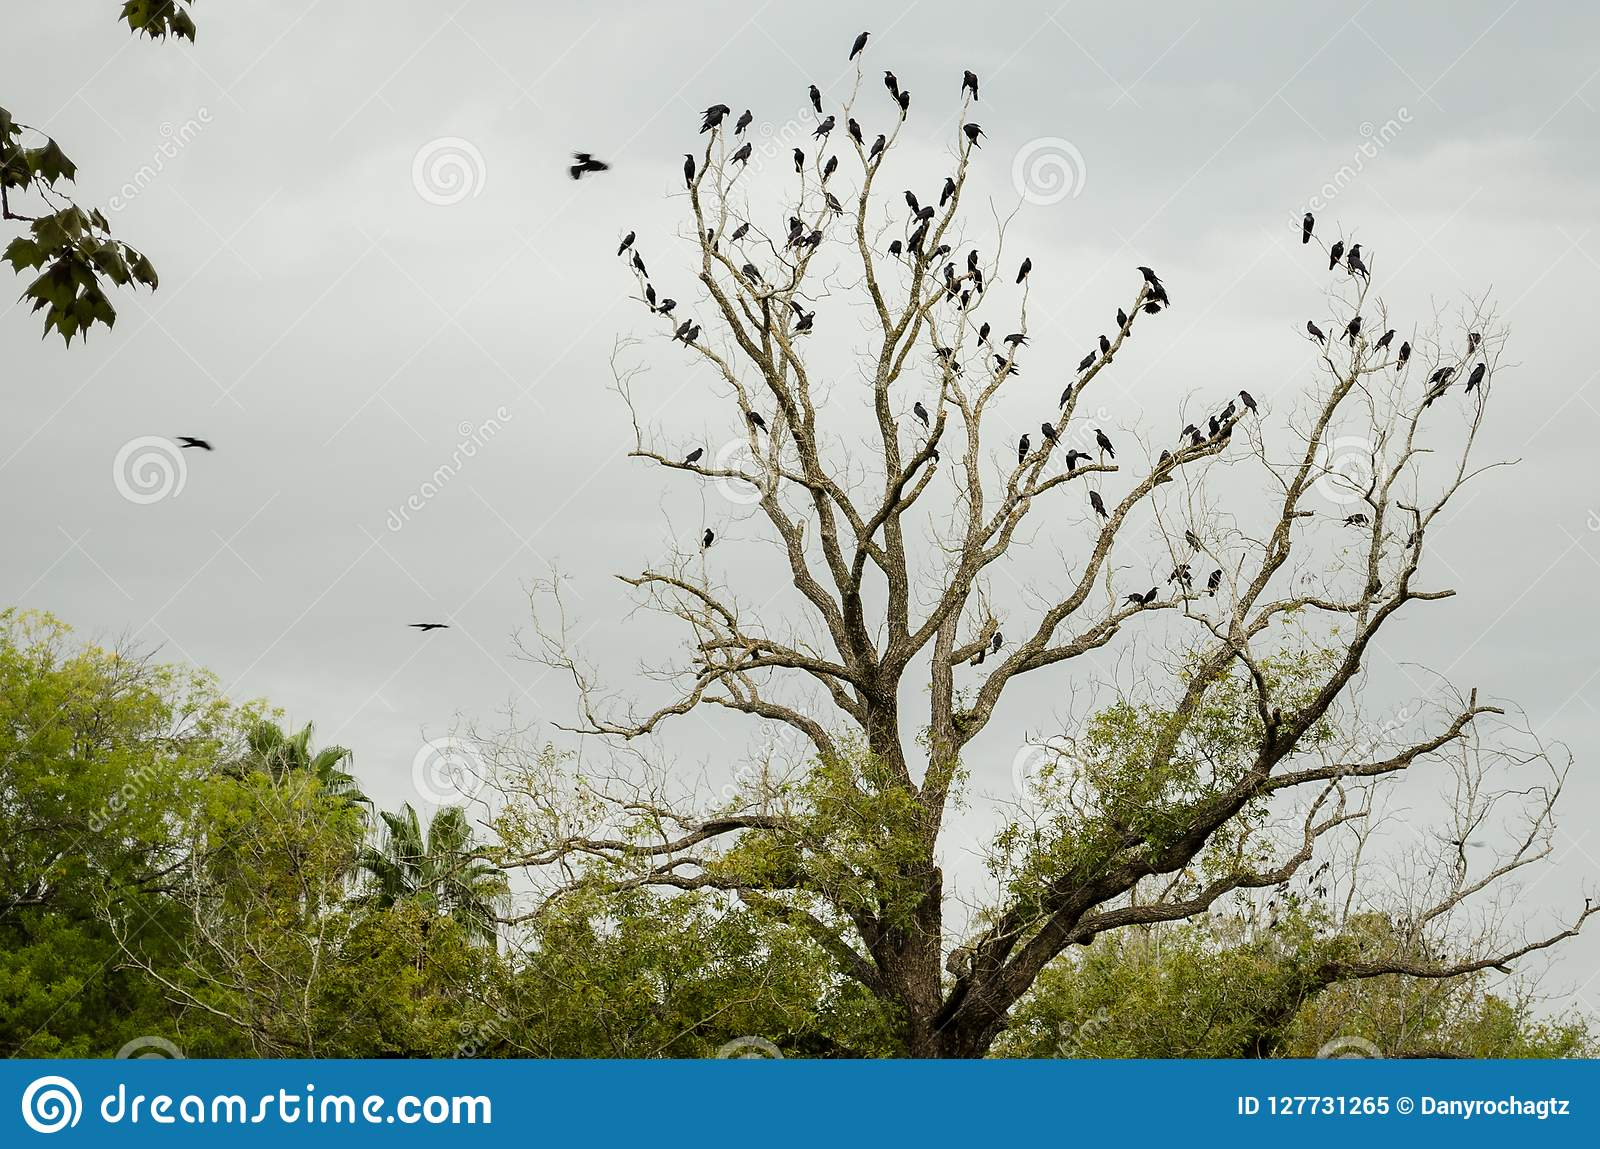 The tip of a leafless tree full of black crows.